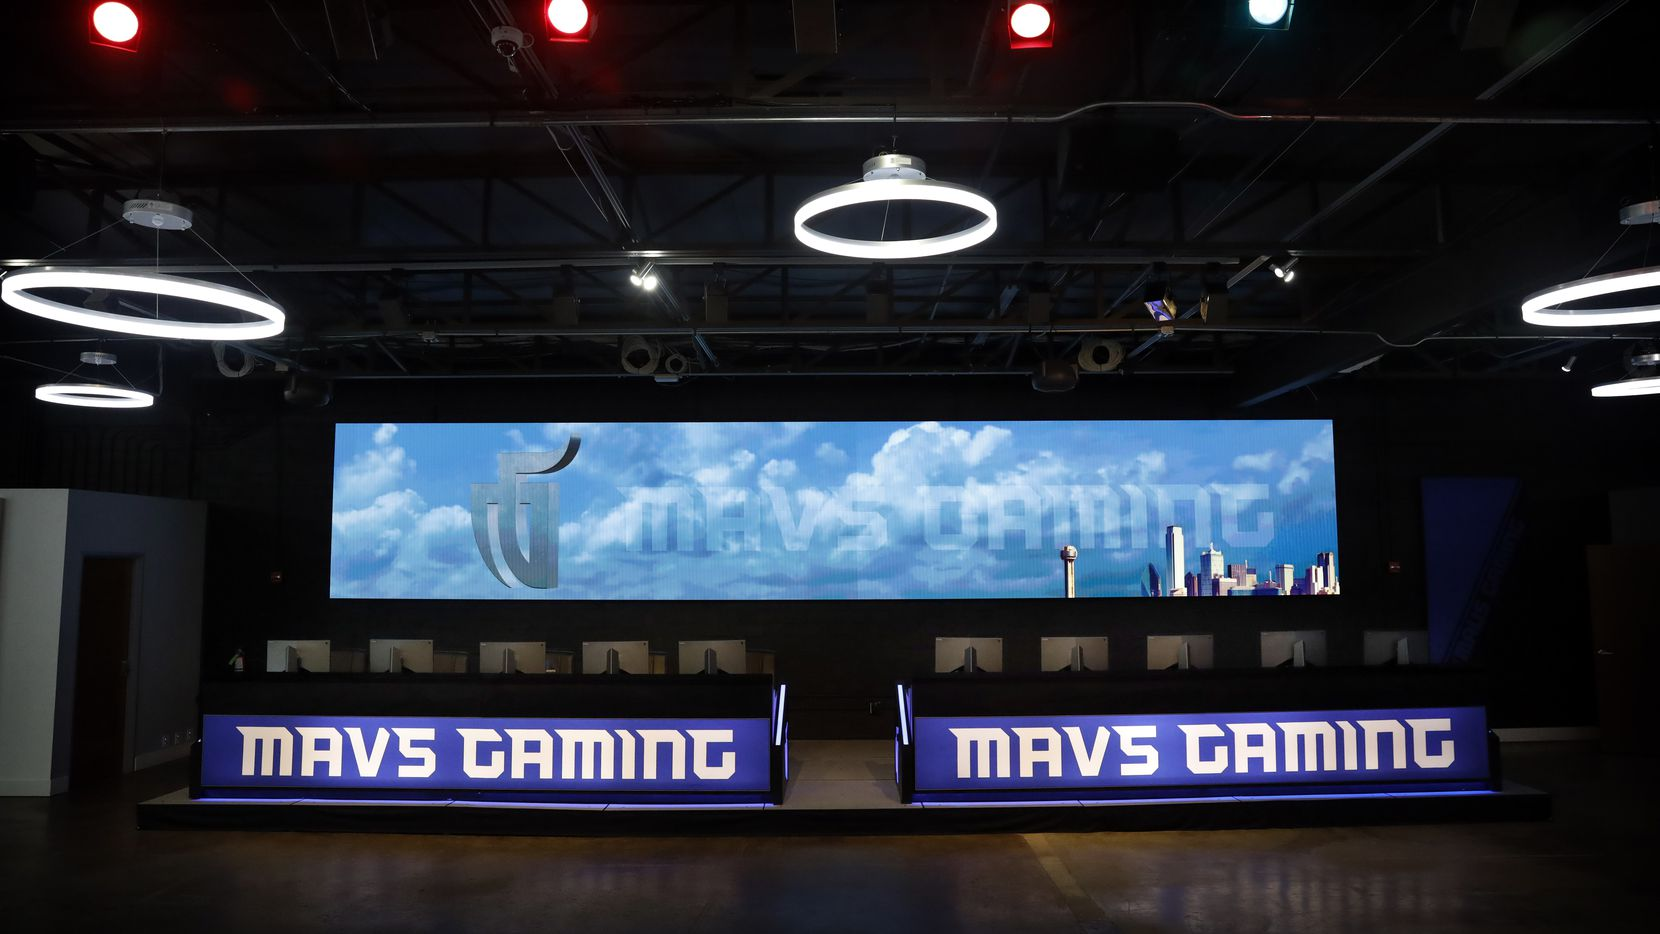 Mavs Gaming, which represents the Dallas Mavericks in the NBA 2K League, has a large competition room/event space in their Deep Ellum headquarters in Dallas, Saturday, February 22, 2020. (Tom Fox/The Dallas Morning News)